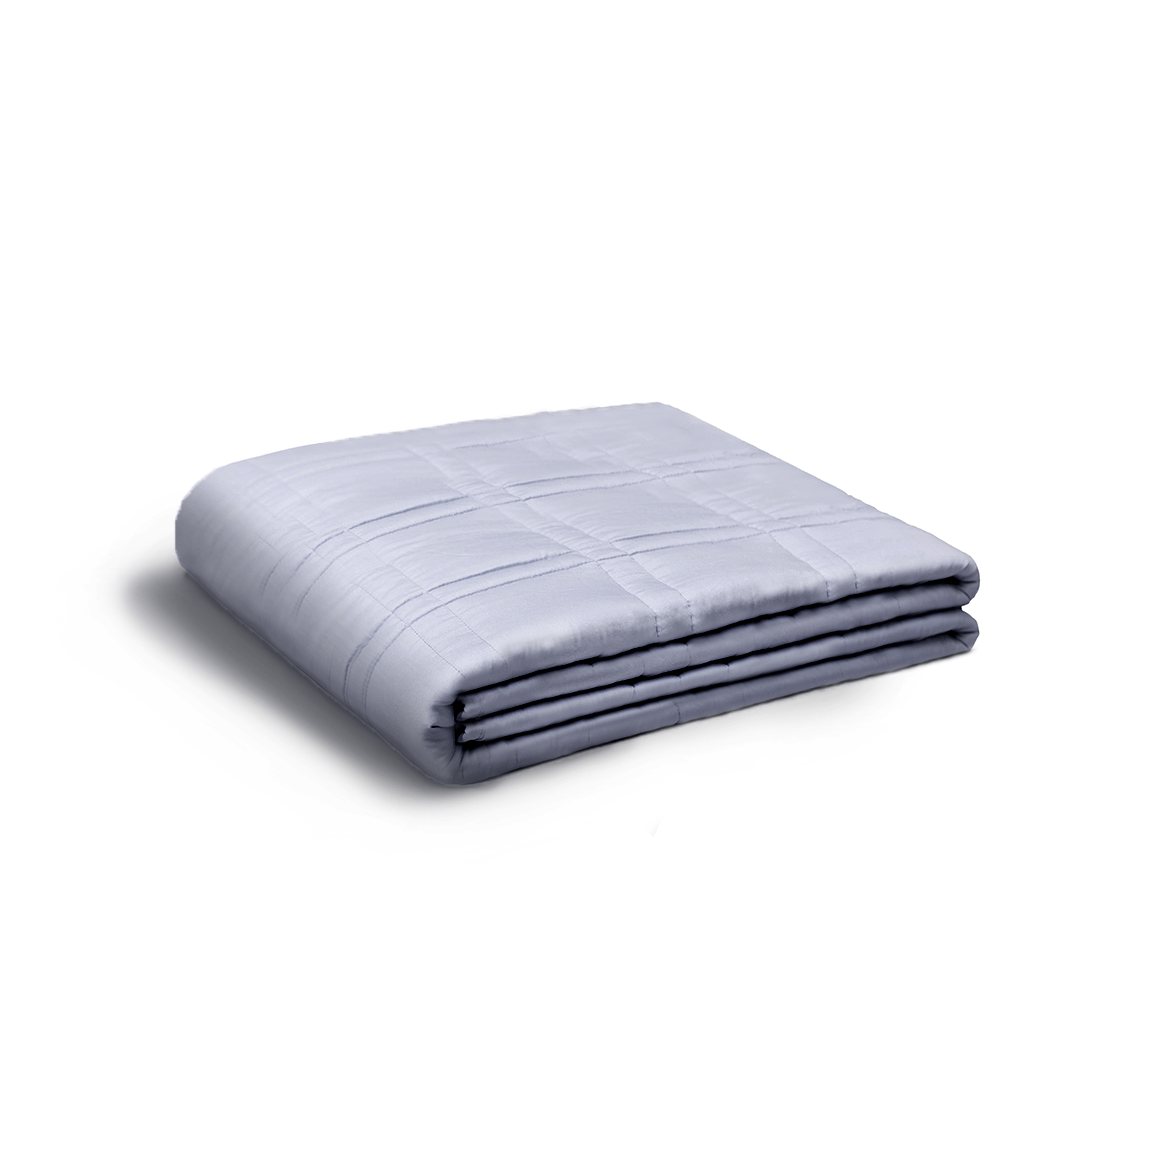 Bamboo Modal Weighted Blanket